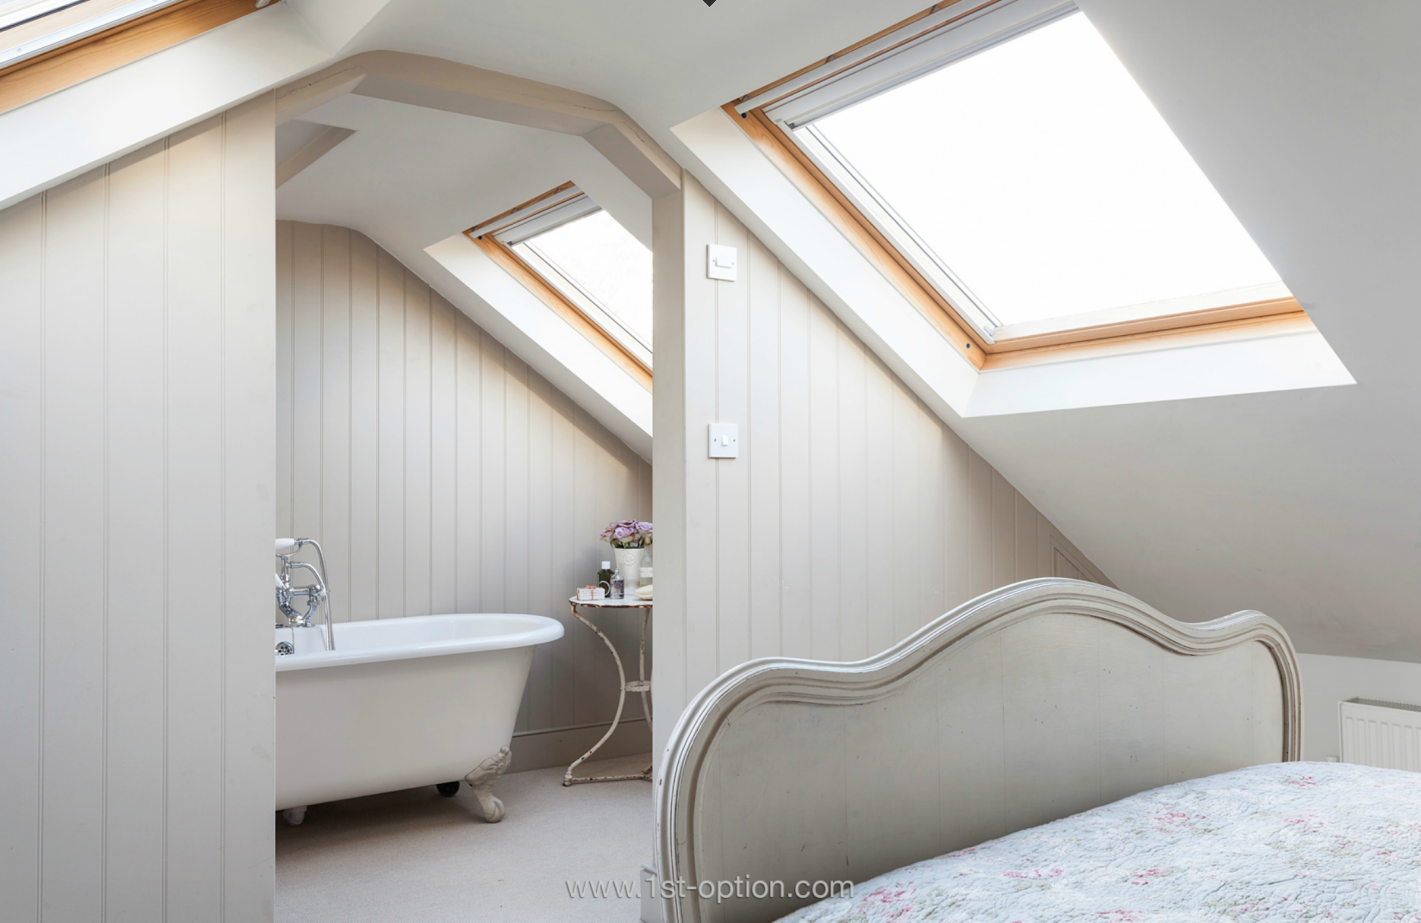 Loft Conversion Bedroom With En Suite The Best Attic Home Design - Loft conversion bedroom ideas